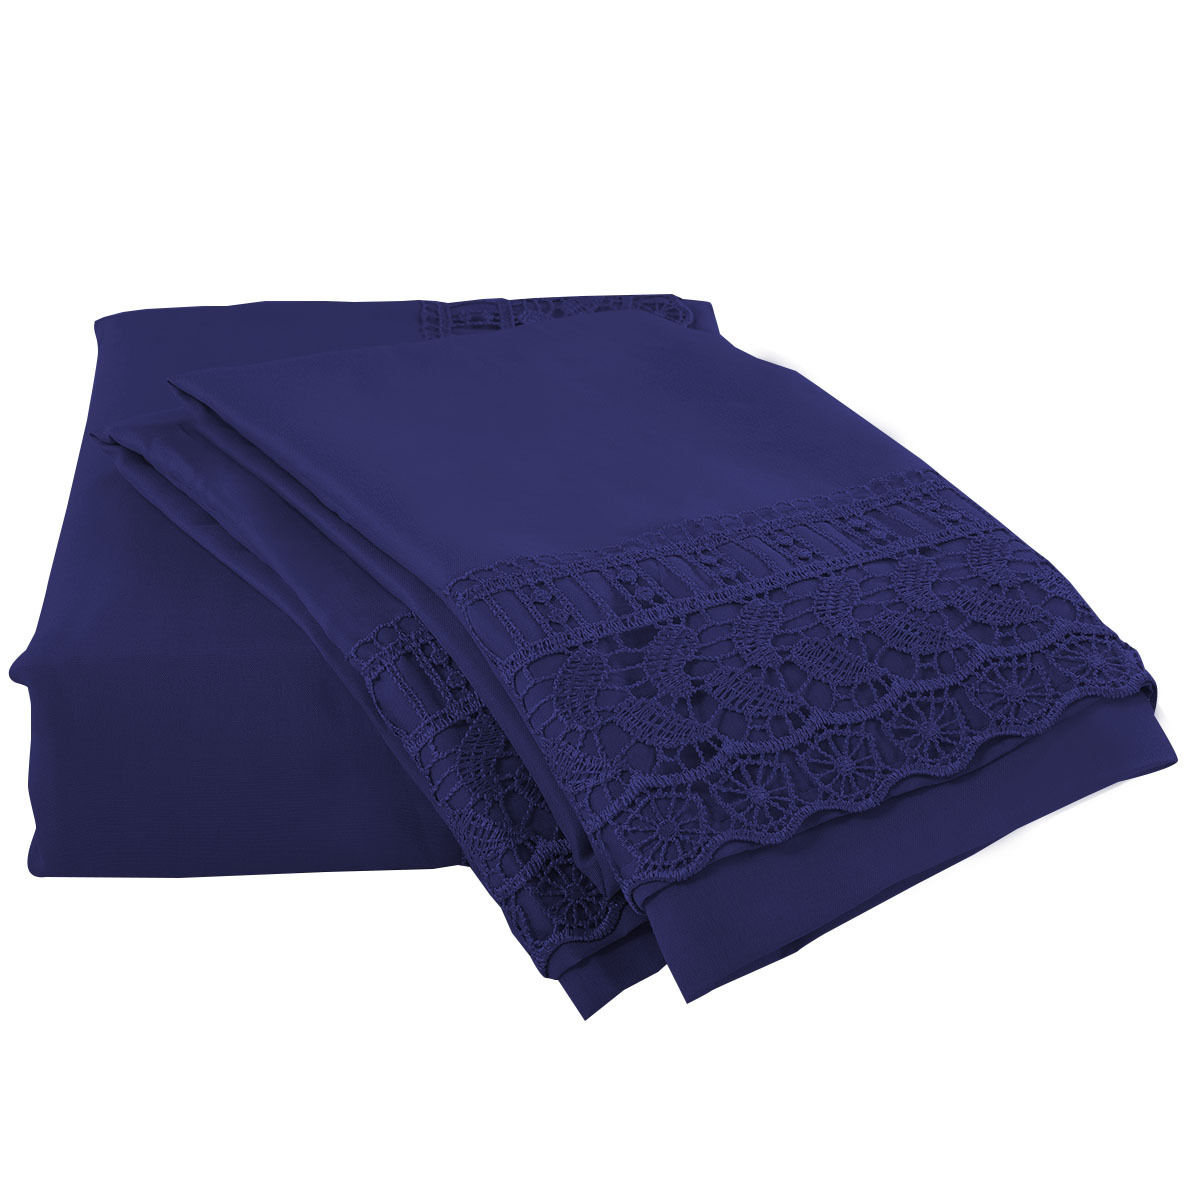 1600-Count-4-Piece-Bed-Sheet-Set-Deep-Pocket-6-Color-5-Size-Chemical-Lace-New